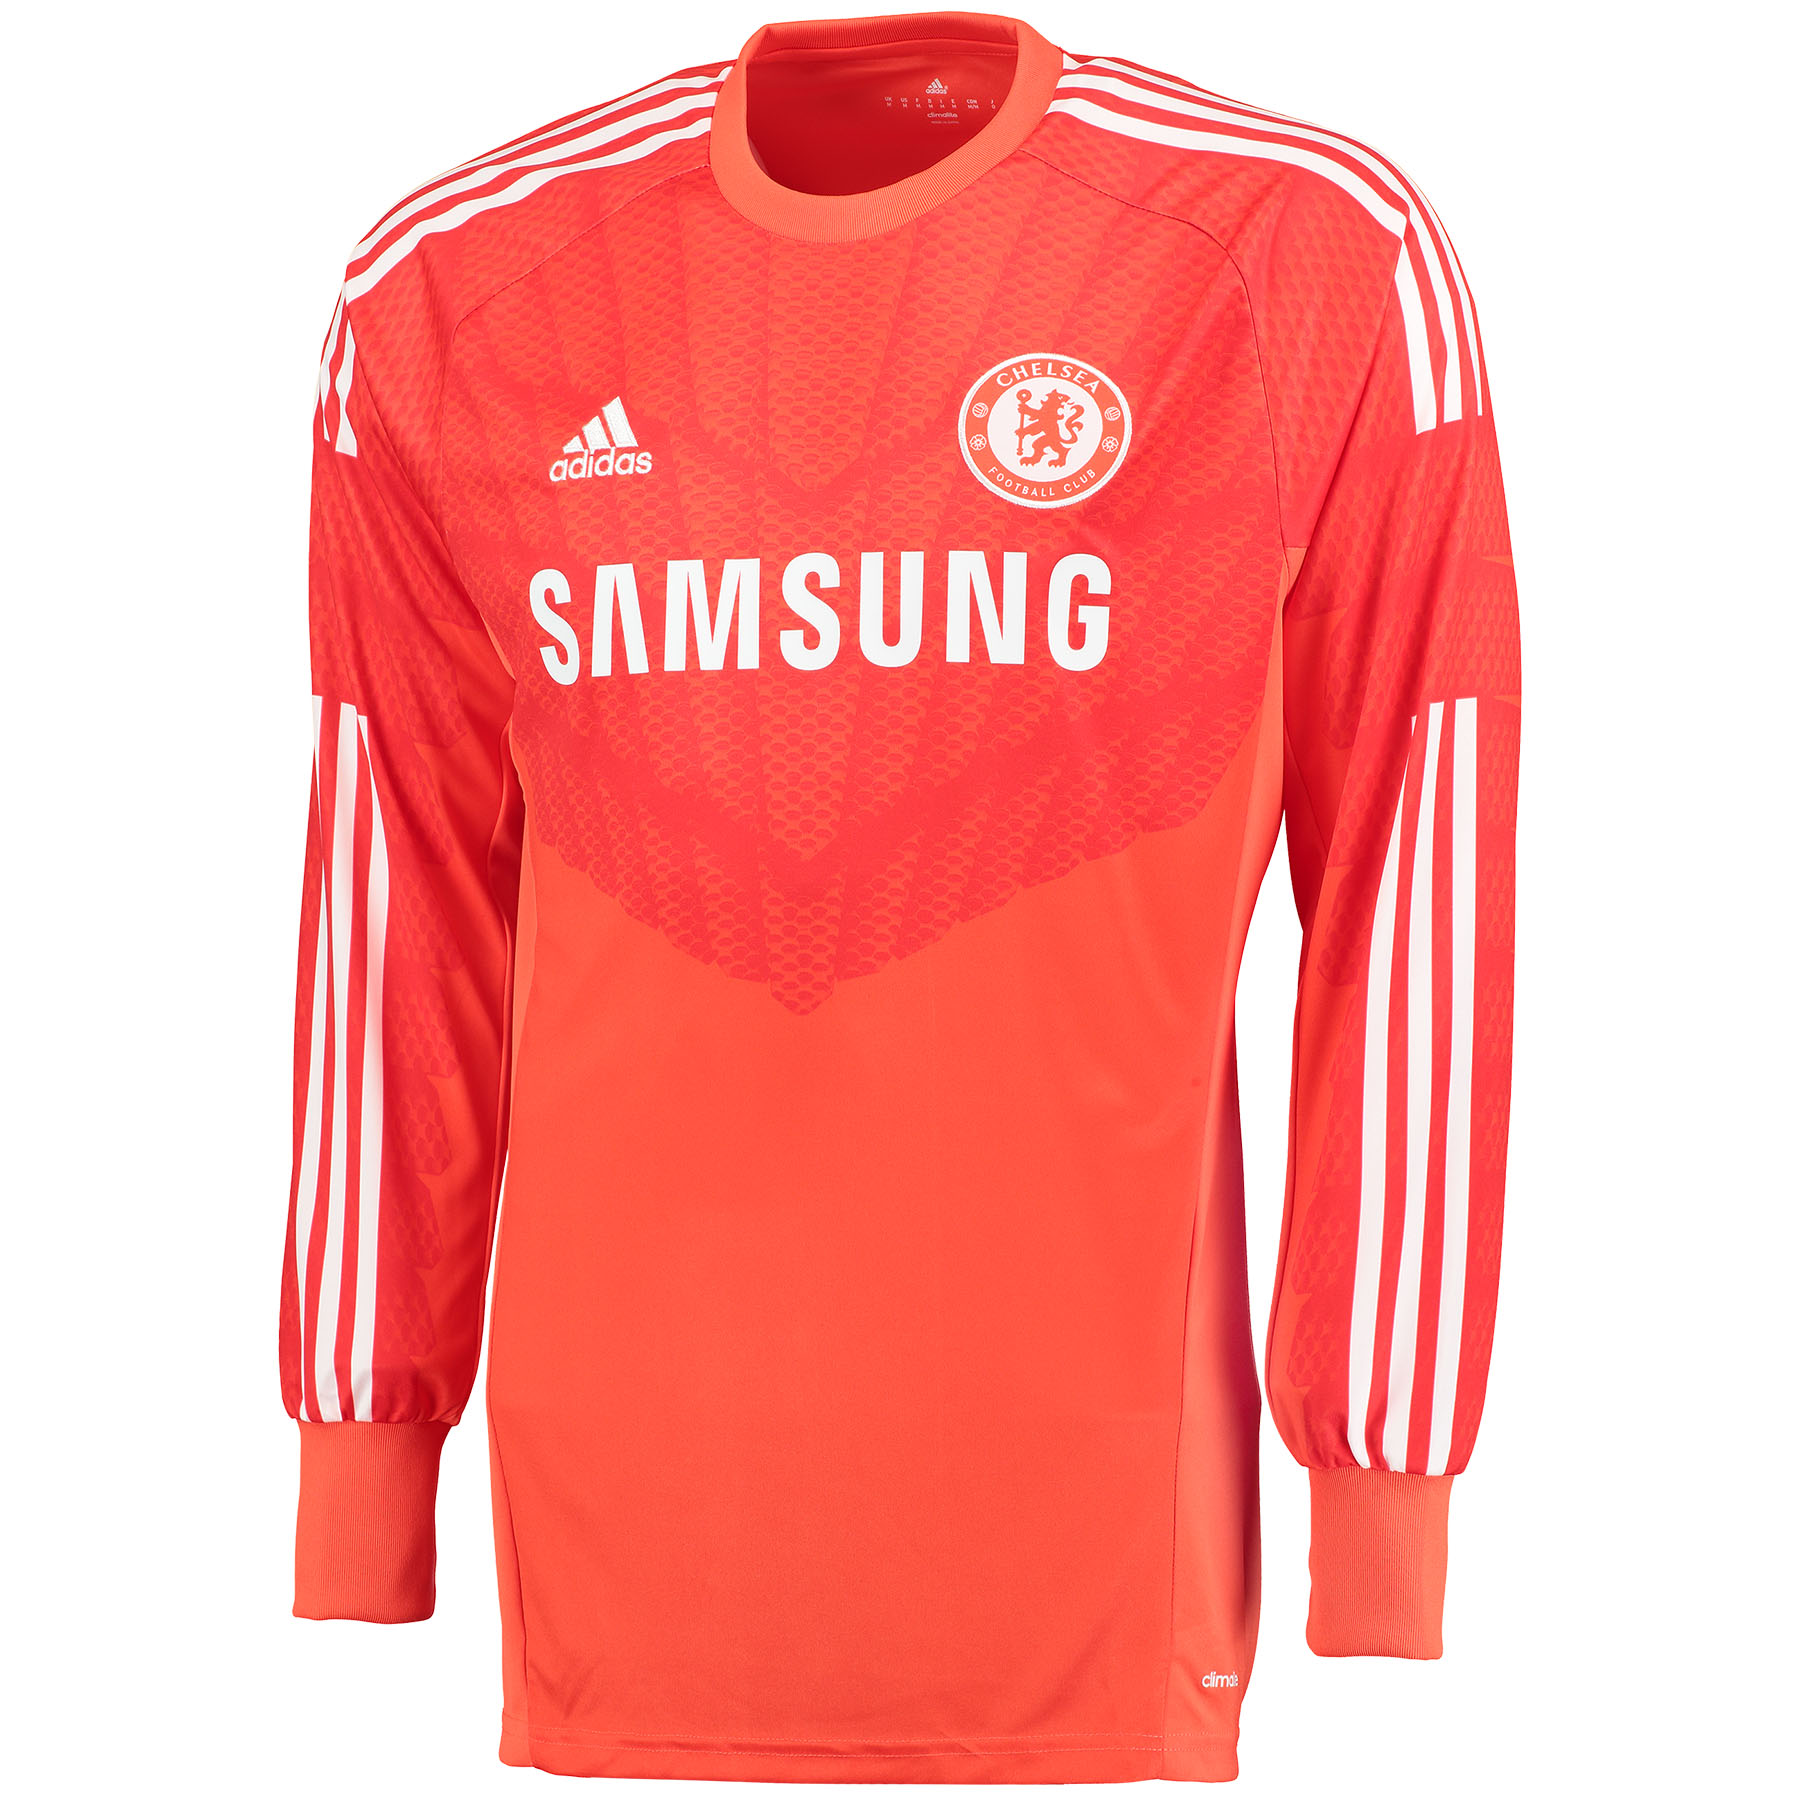 Chelsea Goalkeeper Shirt 2014/15 - Solar